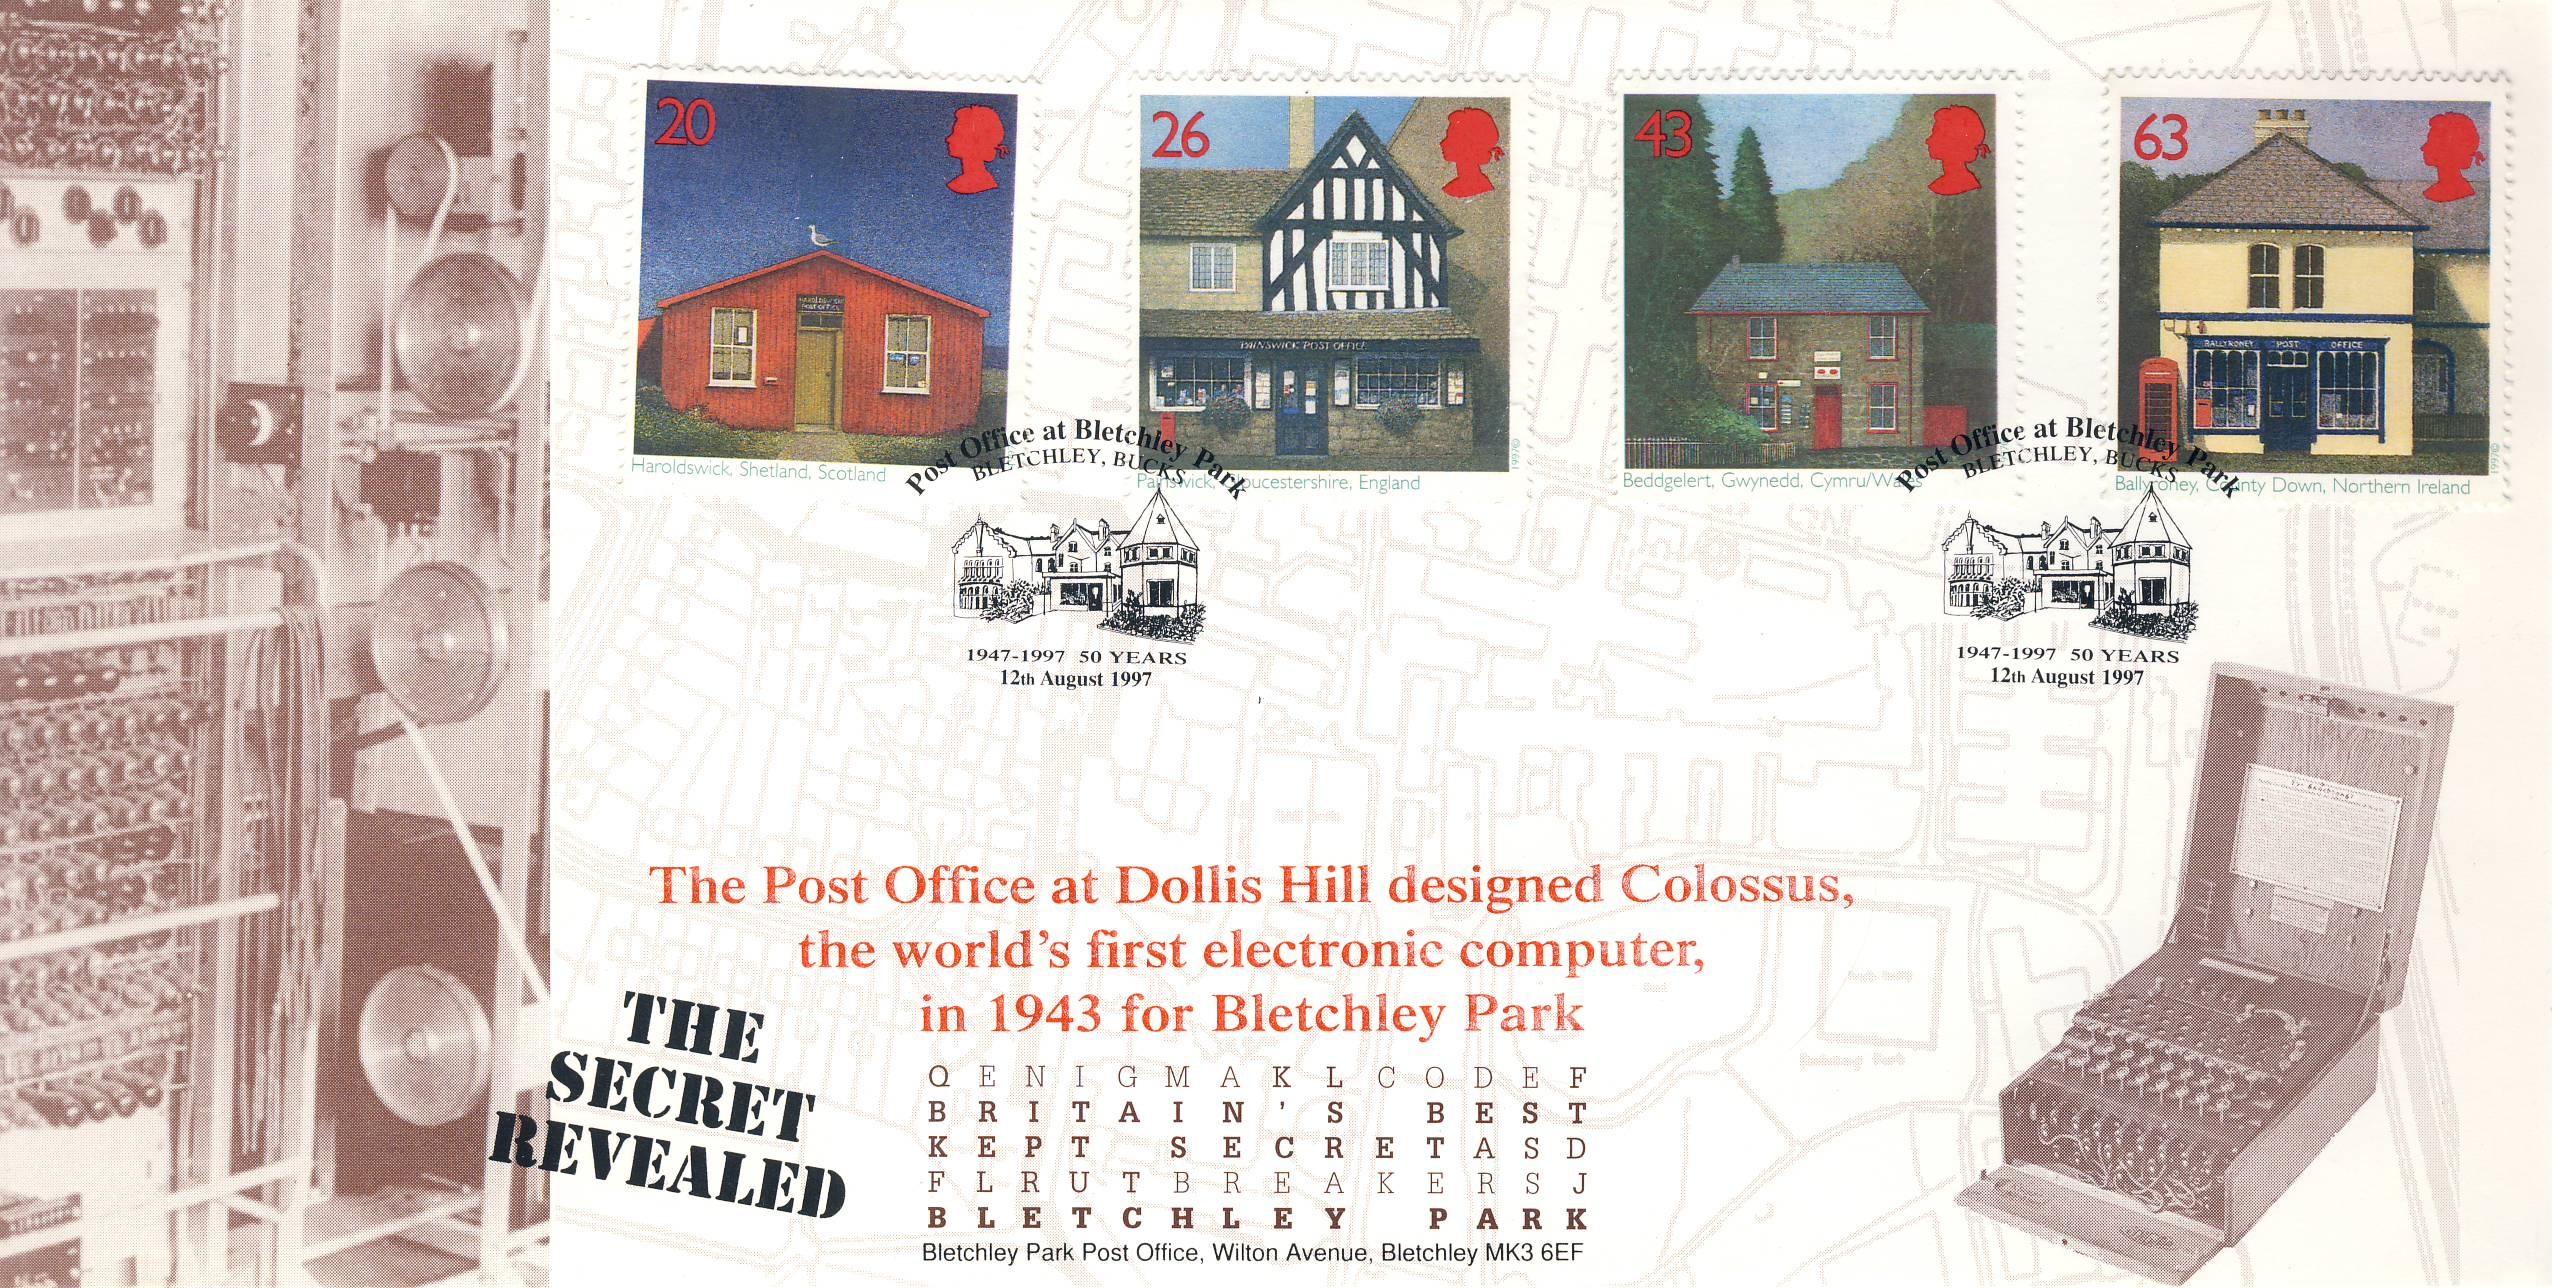 12th August 1997 Dollis Hill Colossus BLETCHLEY PARK Limited Edition cover FDC postmark Post Office 50 years This is a limited edition Post Offices stamps cover numbered 43 of 300 . Very good condition.